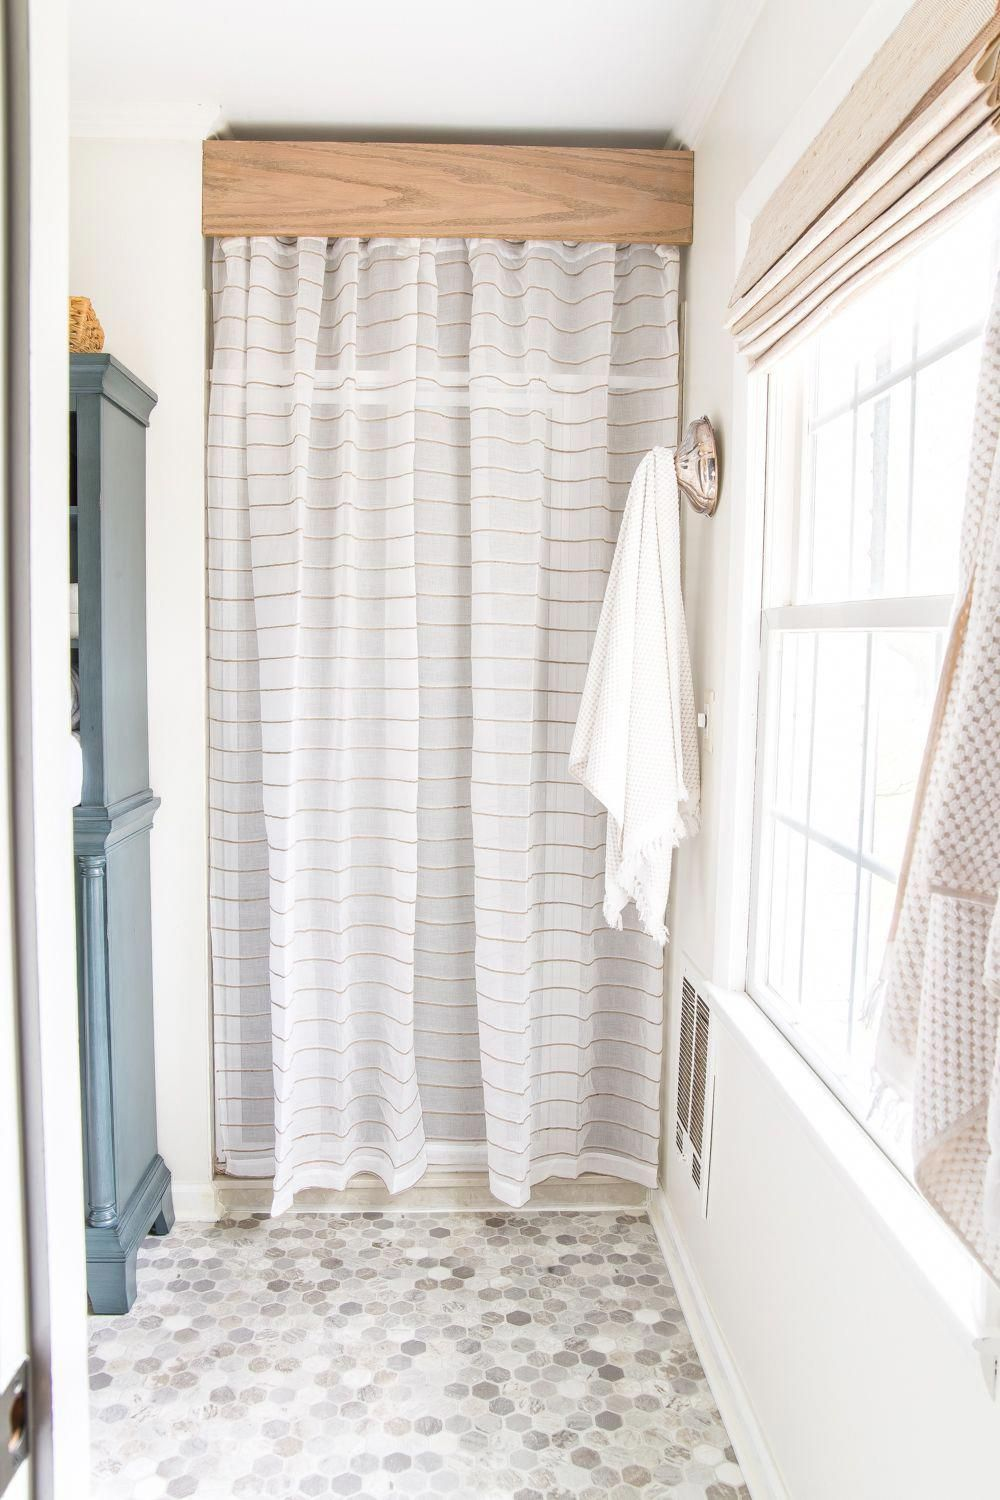 Budget Master Bathroom Refresh Reveal Old Shower Door Cover Up With A Semi Sheer Curtain And A Diy Wooden In 2020 Master Bathroom Refresh Shower Doors Bathroom Decor